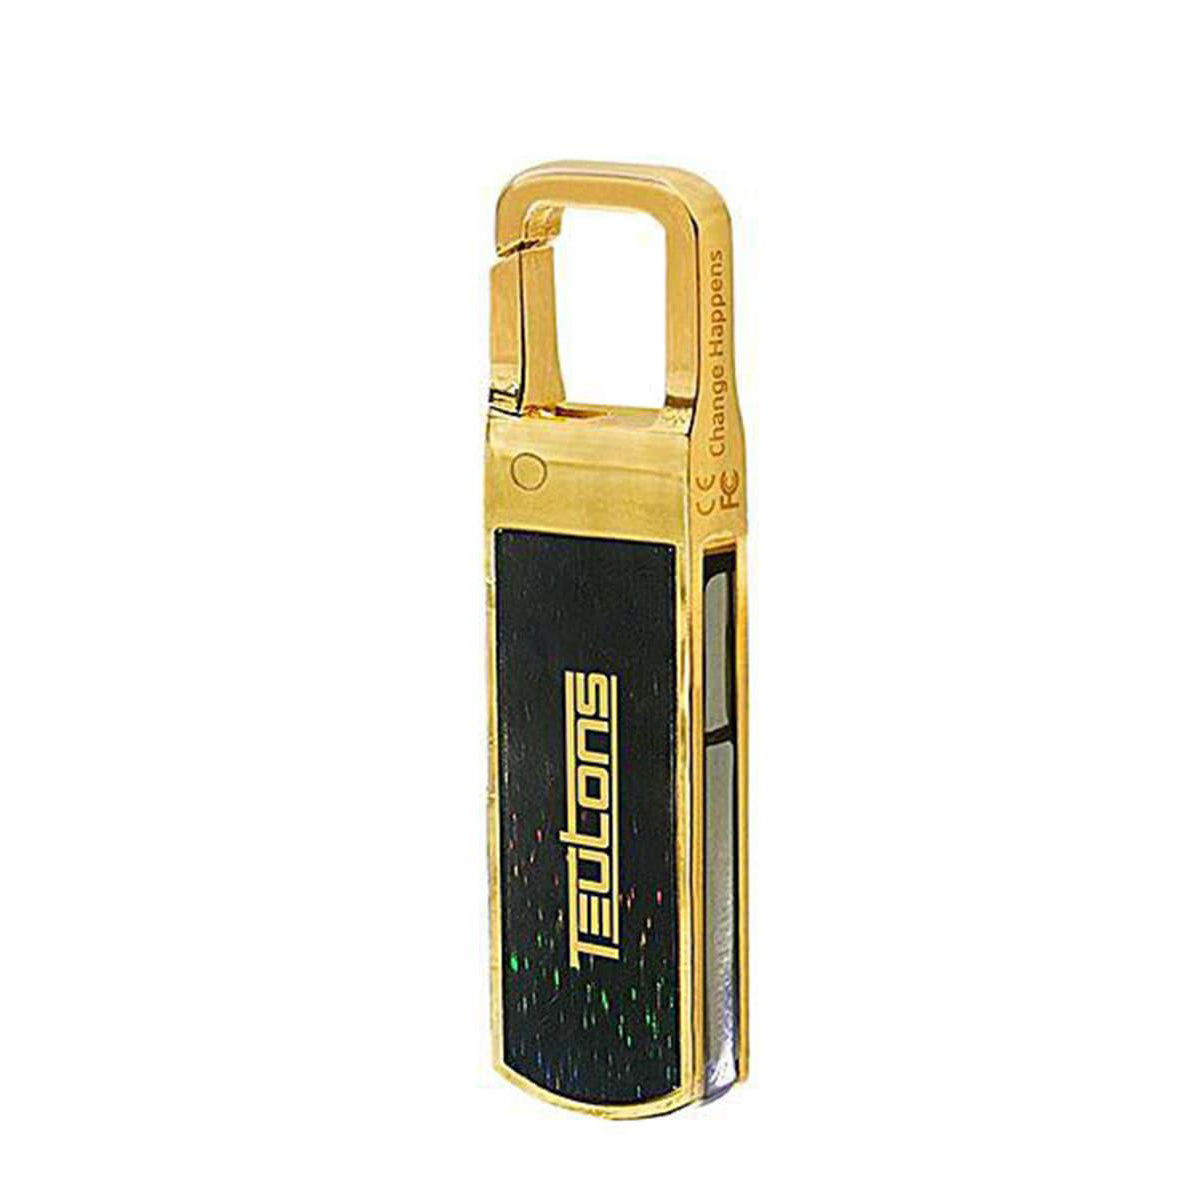 Teutons Solid Gold 32gb Usb 3.1 Gen-1 Flash Drive